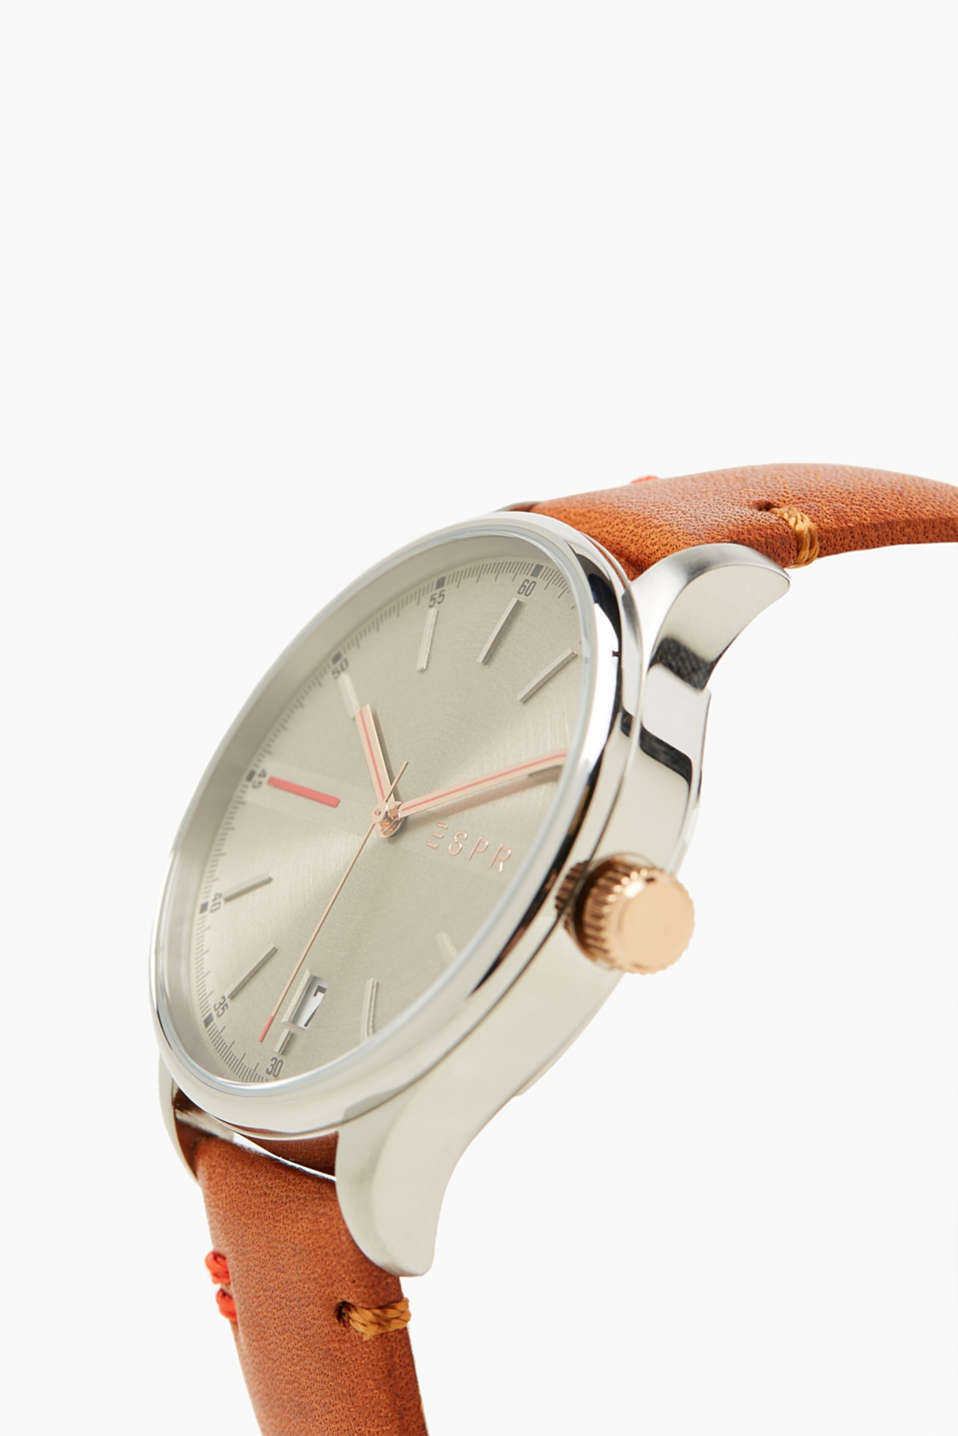 Stainless steel watch with leather strap